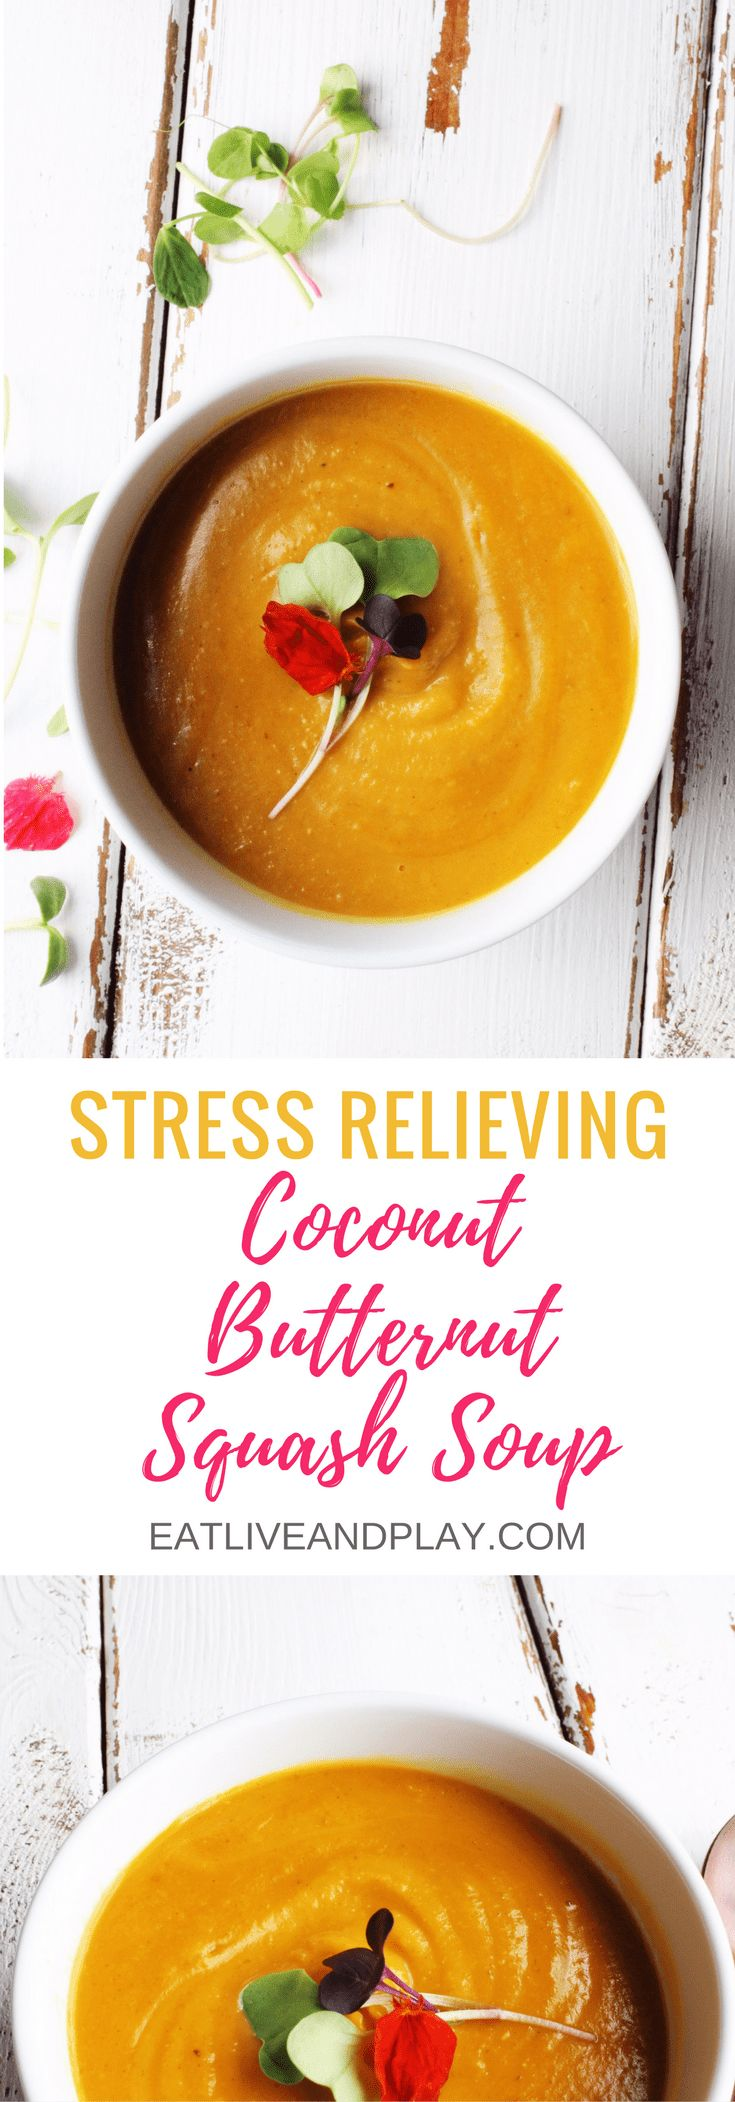 This stress busting butternut squash soup is so unbelievably smooth and creamy and bursting with flavour that's it's hard to believe it's healthy.